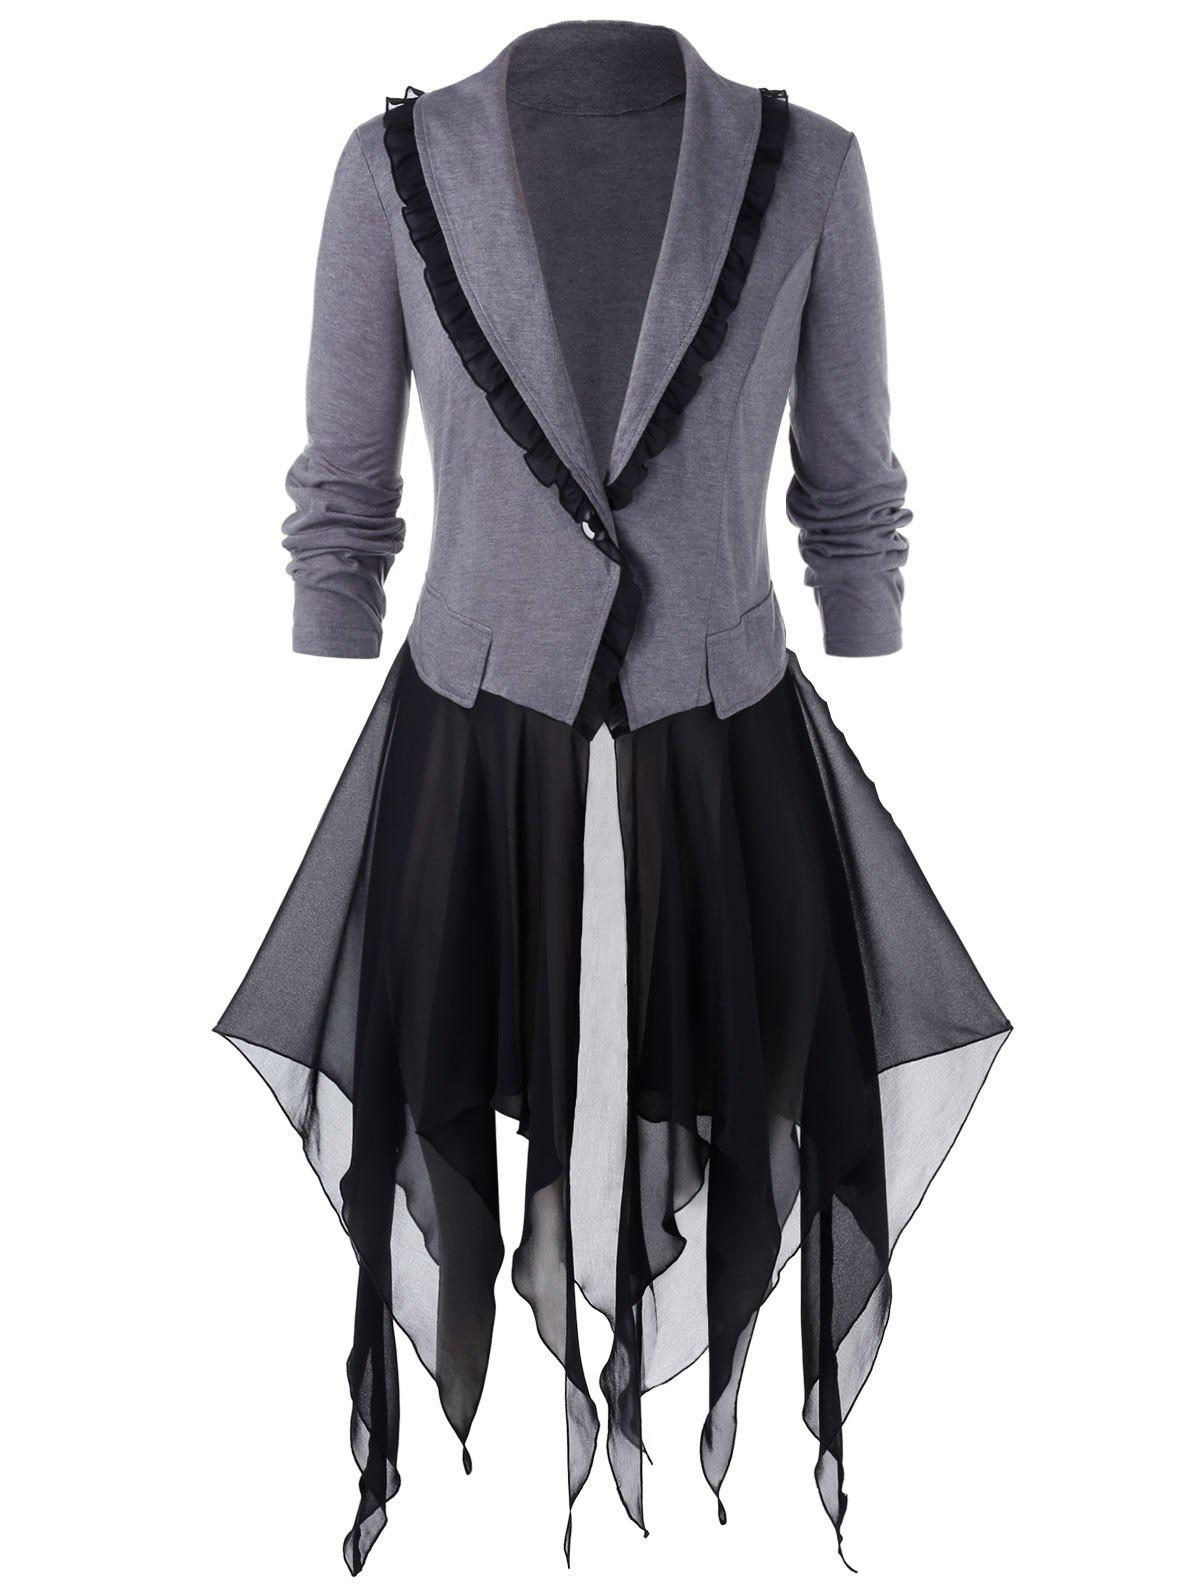 Plus Size Handkerchief Chiffon Insert Halloween Coat - GRAY L